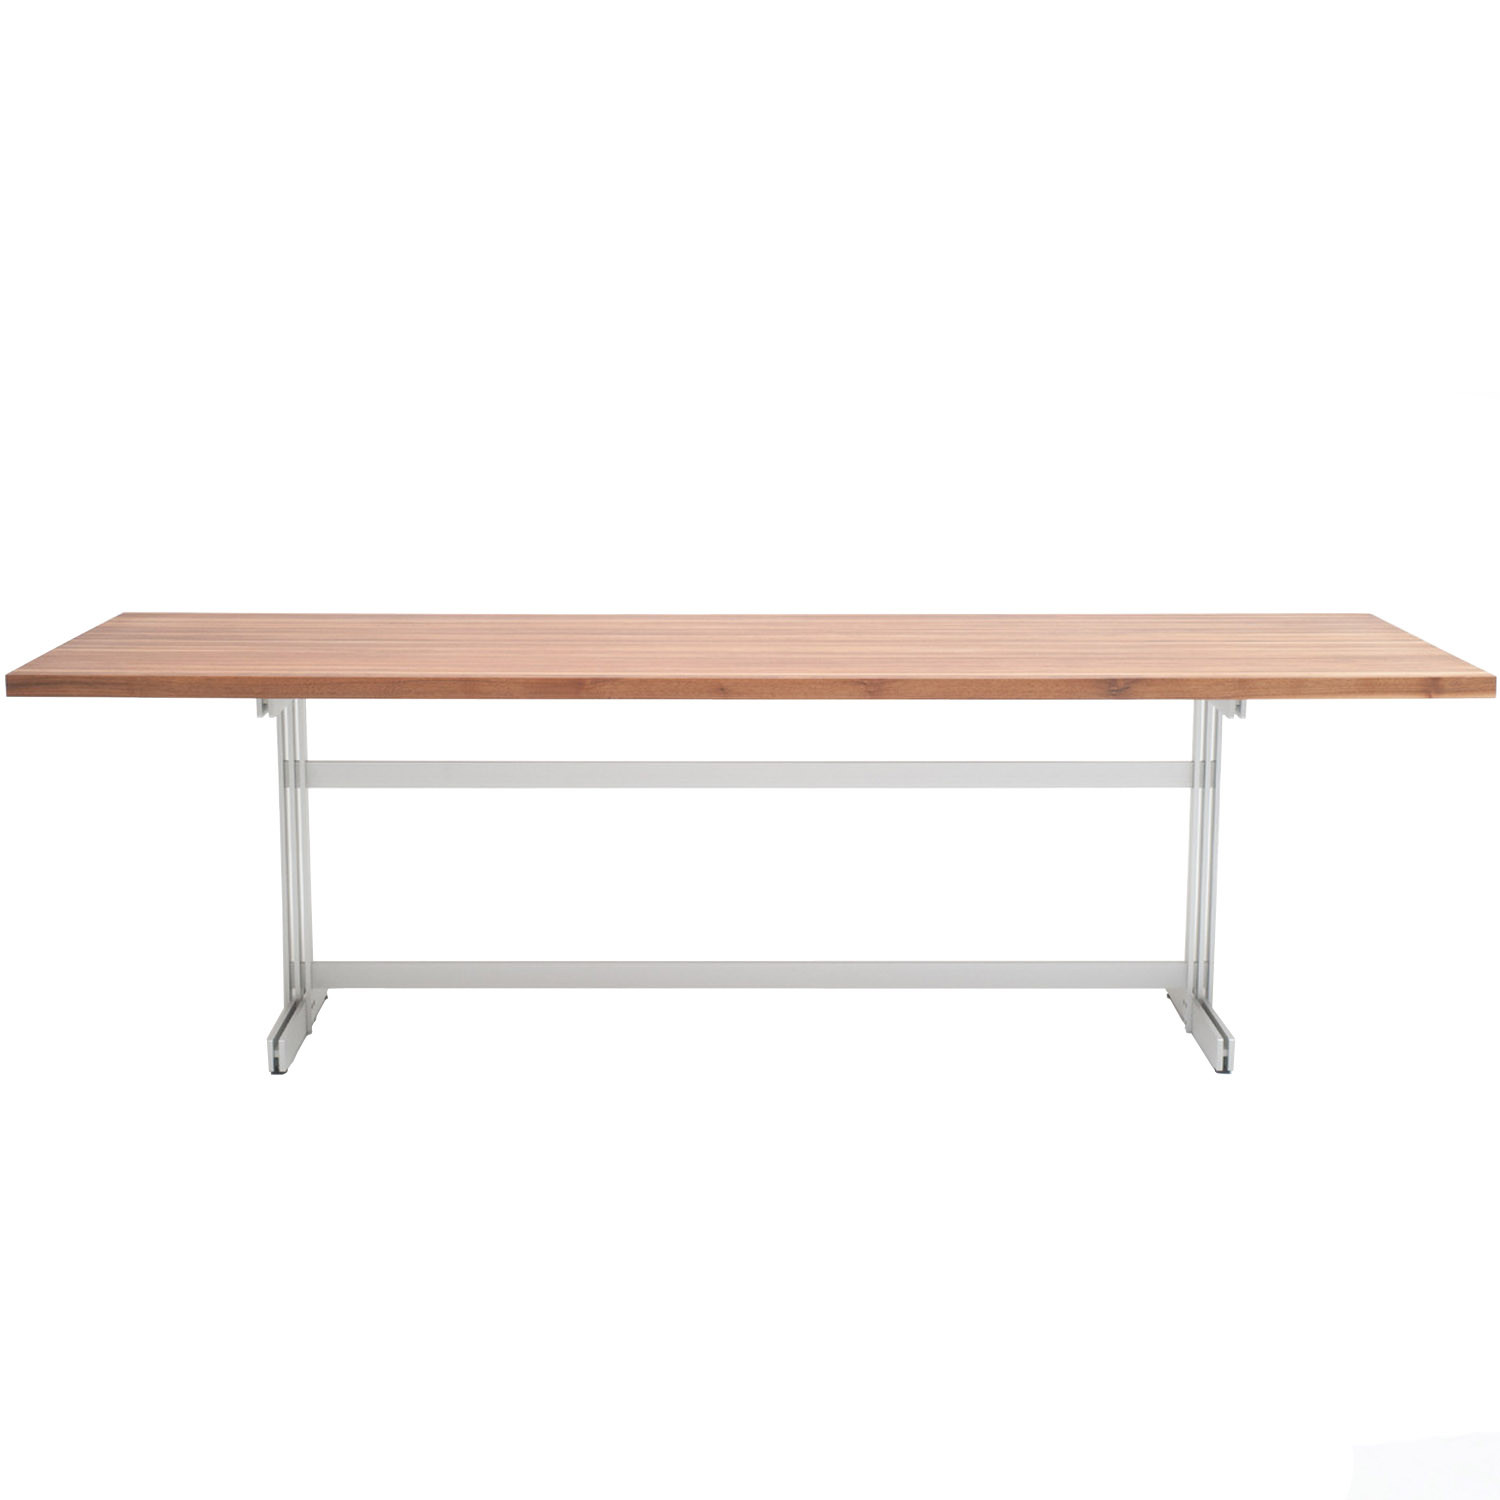 Table Cintree Meeting Table